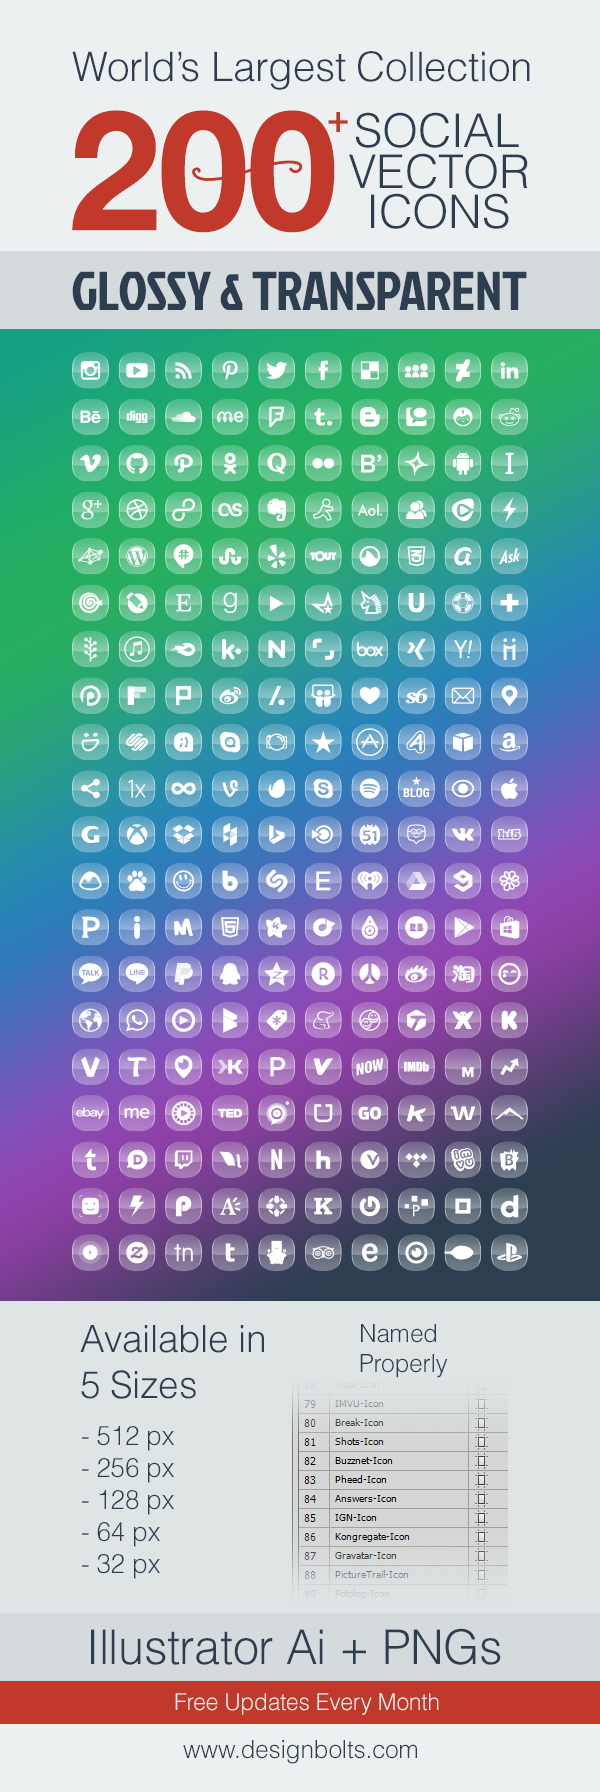 Glossy-Transparent-Social-Media-Icons-Free-Premium